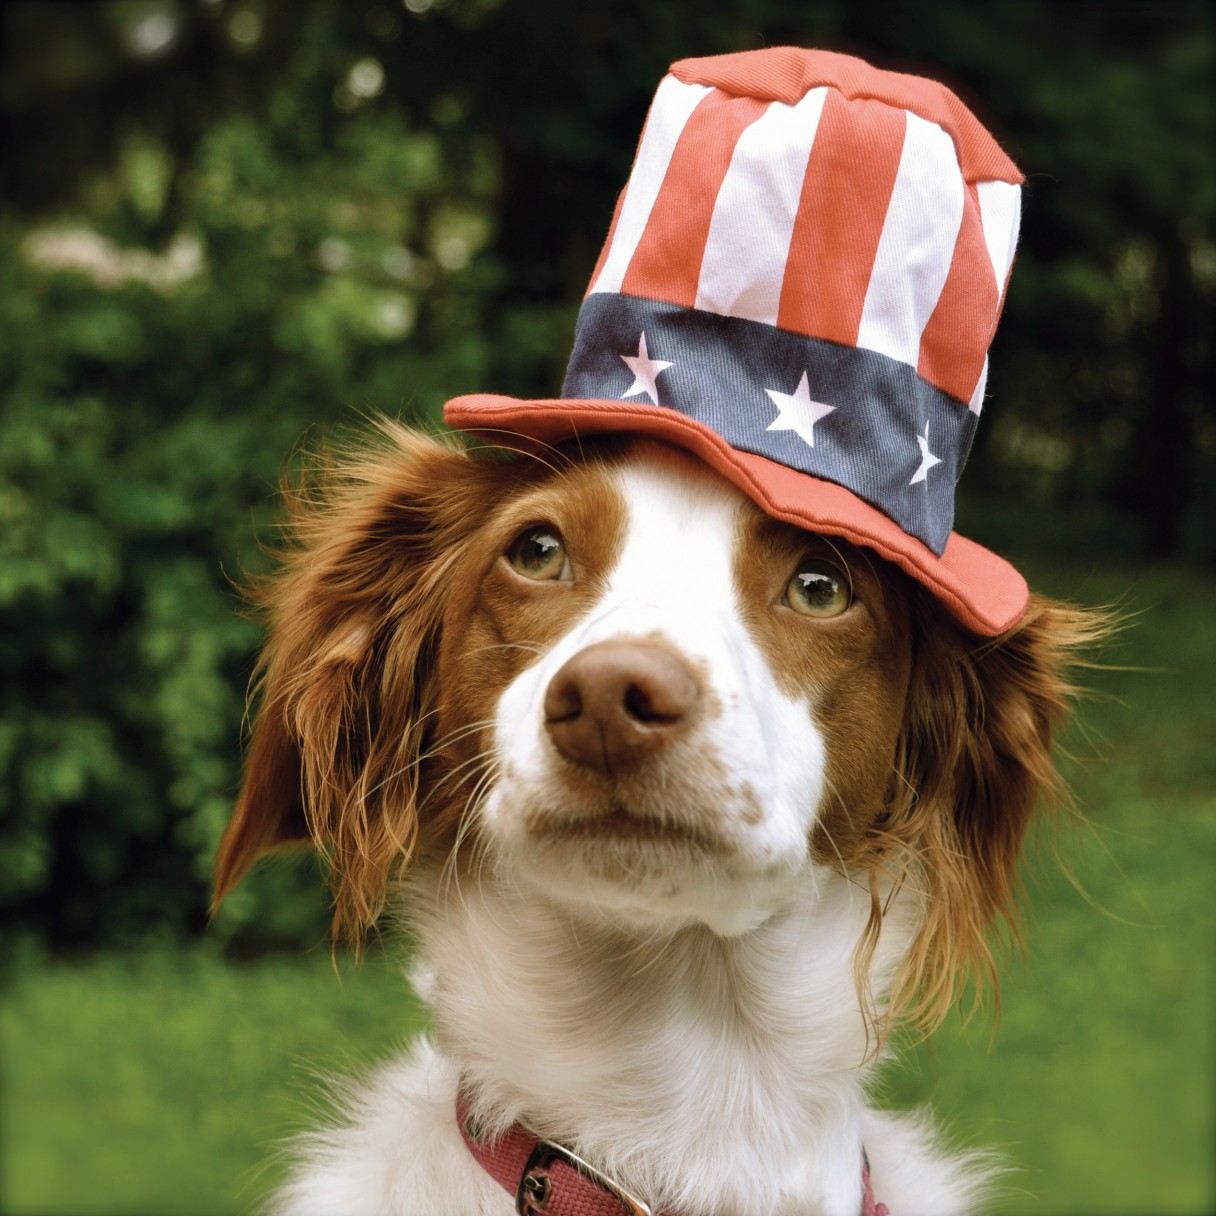 Dog wearing patriotic hat